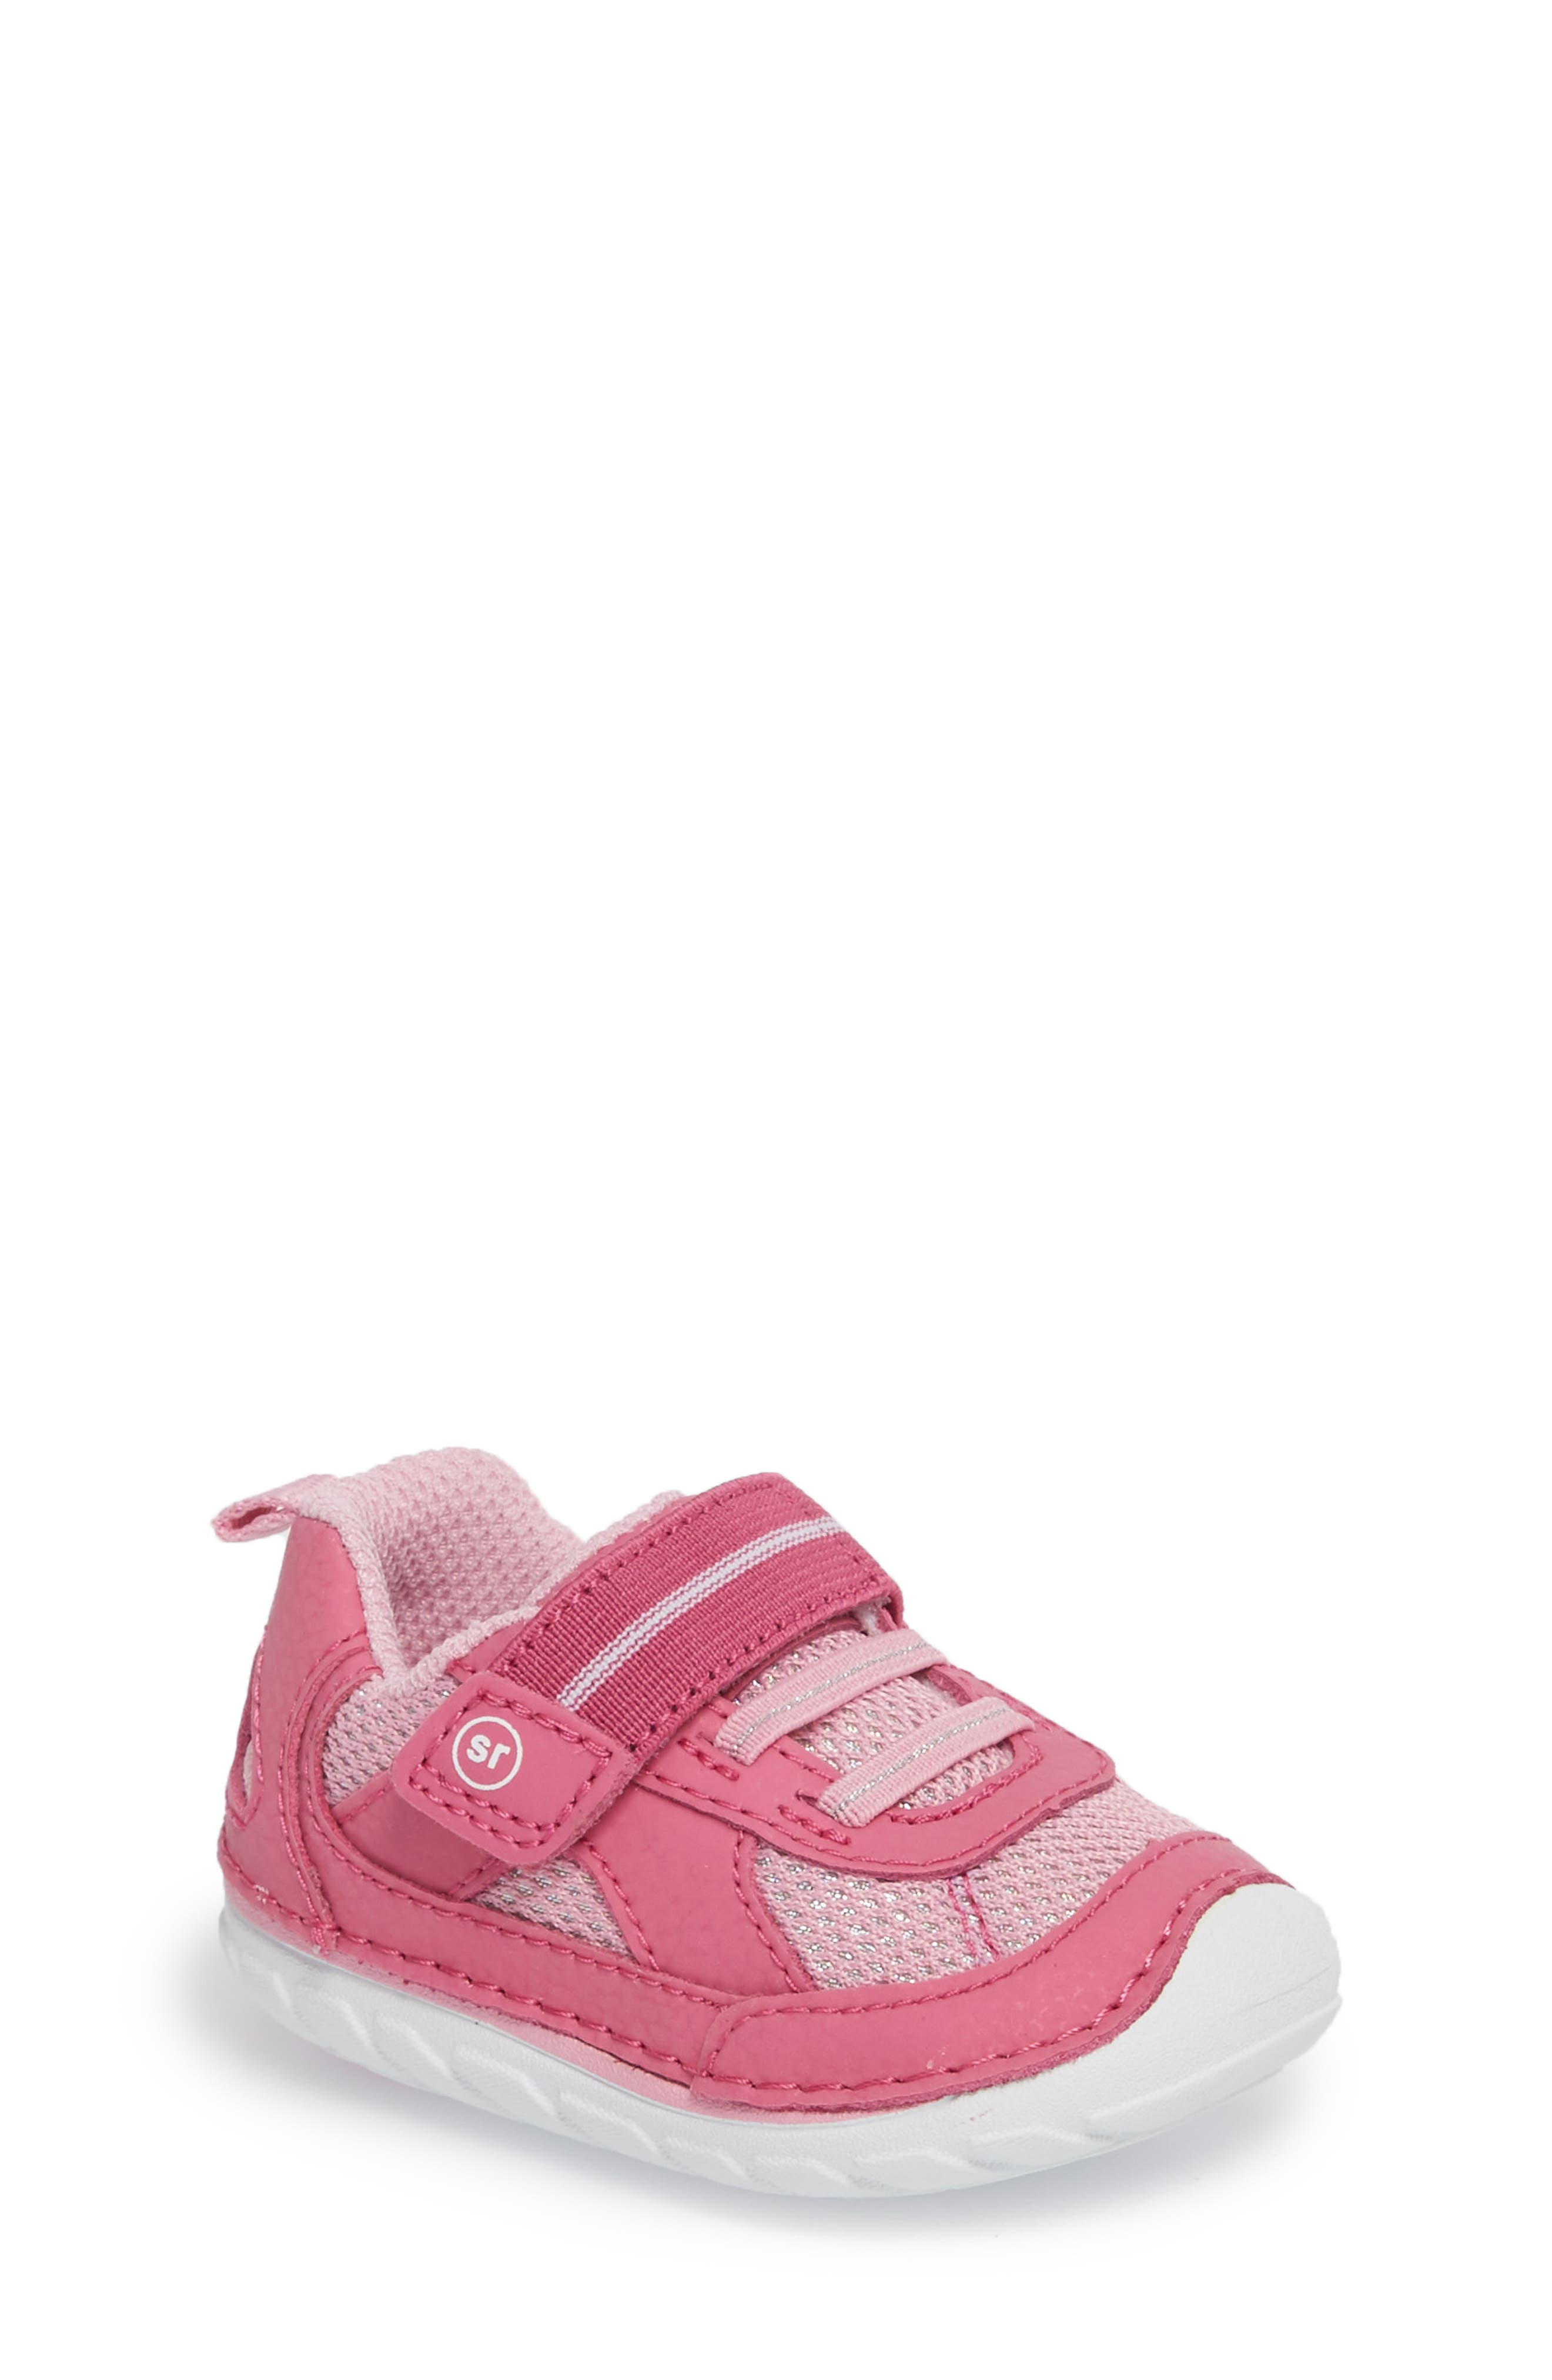 Main Image - Stride Rite Soft Motion™ Jamie Sneaker (Baby & Walker)